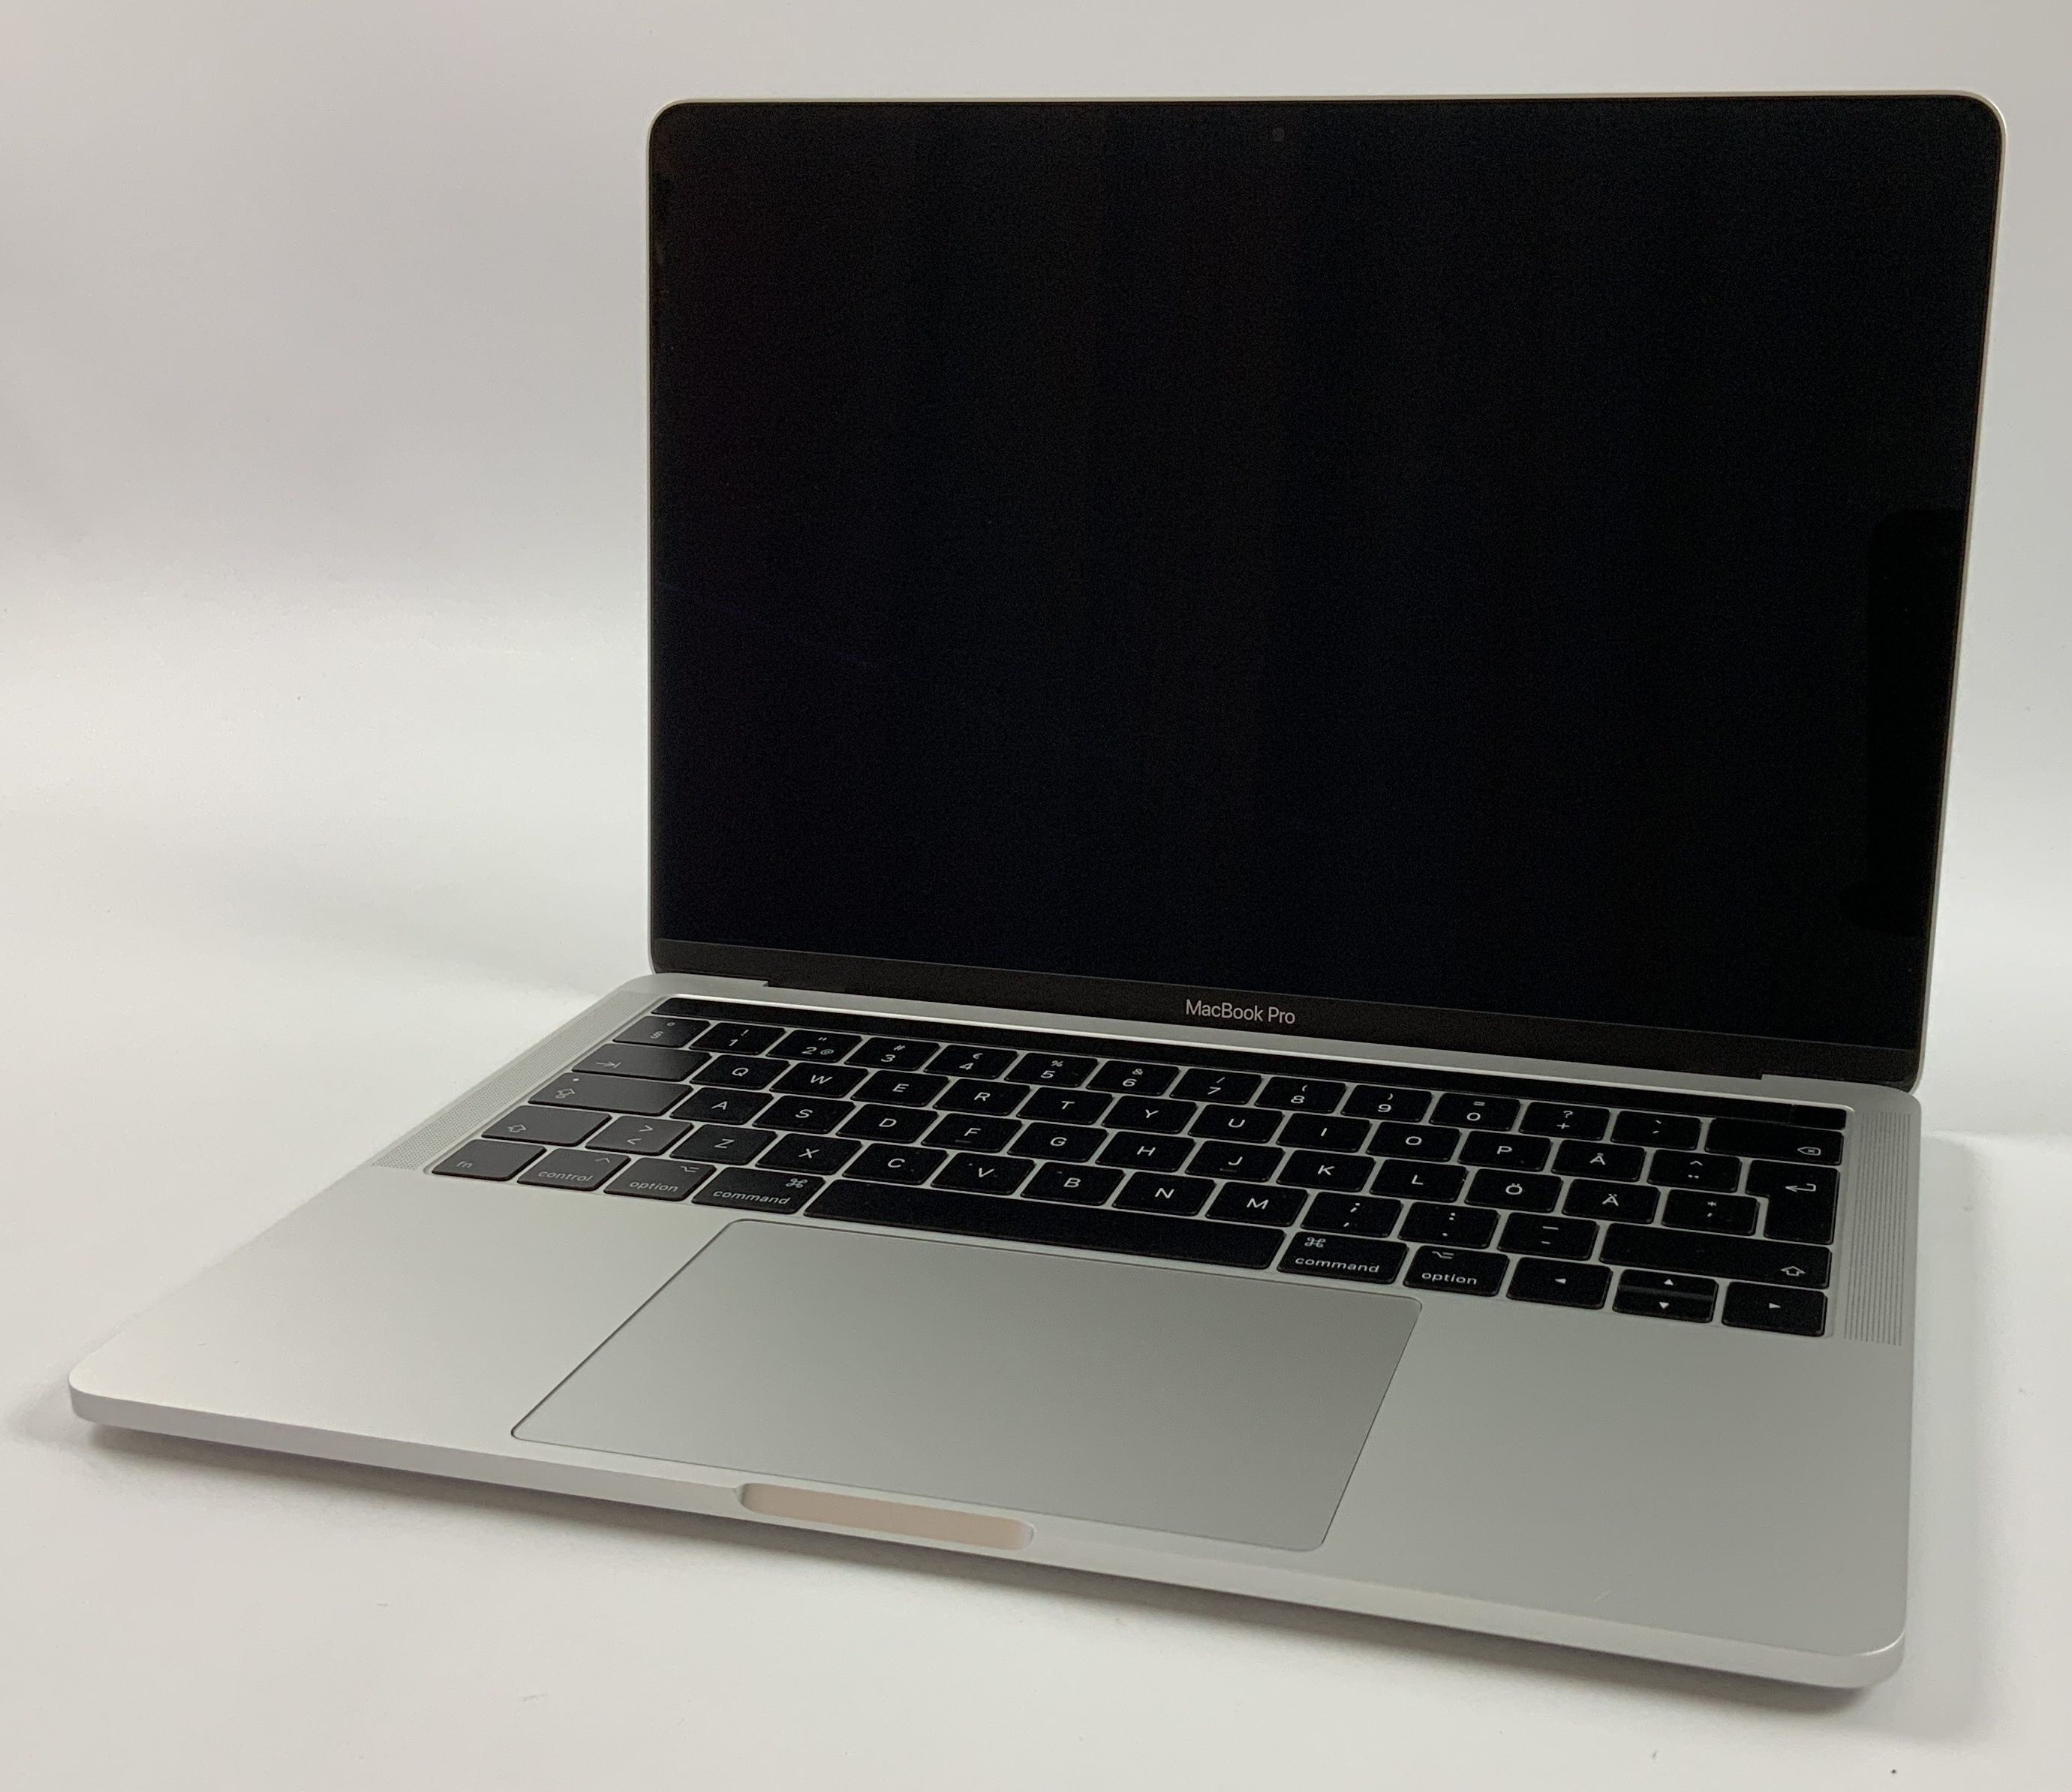 "MacBook Pro 13"" 4TBT Late 2016 (Intel Core i5 2.9 GHz 8 GB RAM 256 GB SSD), Silver, Intel Core i5 2.9 GHz, 8 GB RAM, 256 GB SSD, obraz 1"